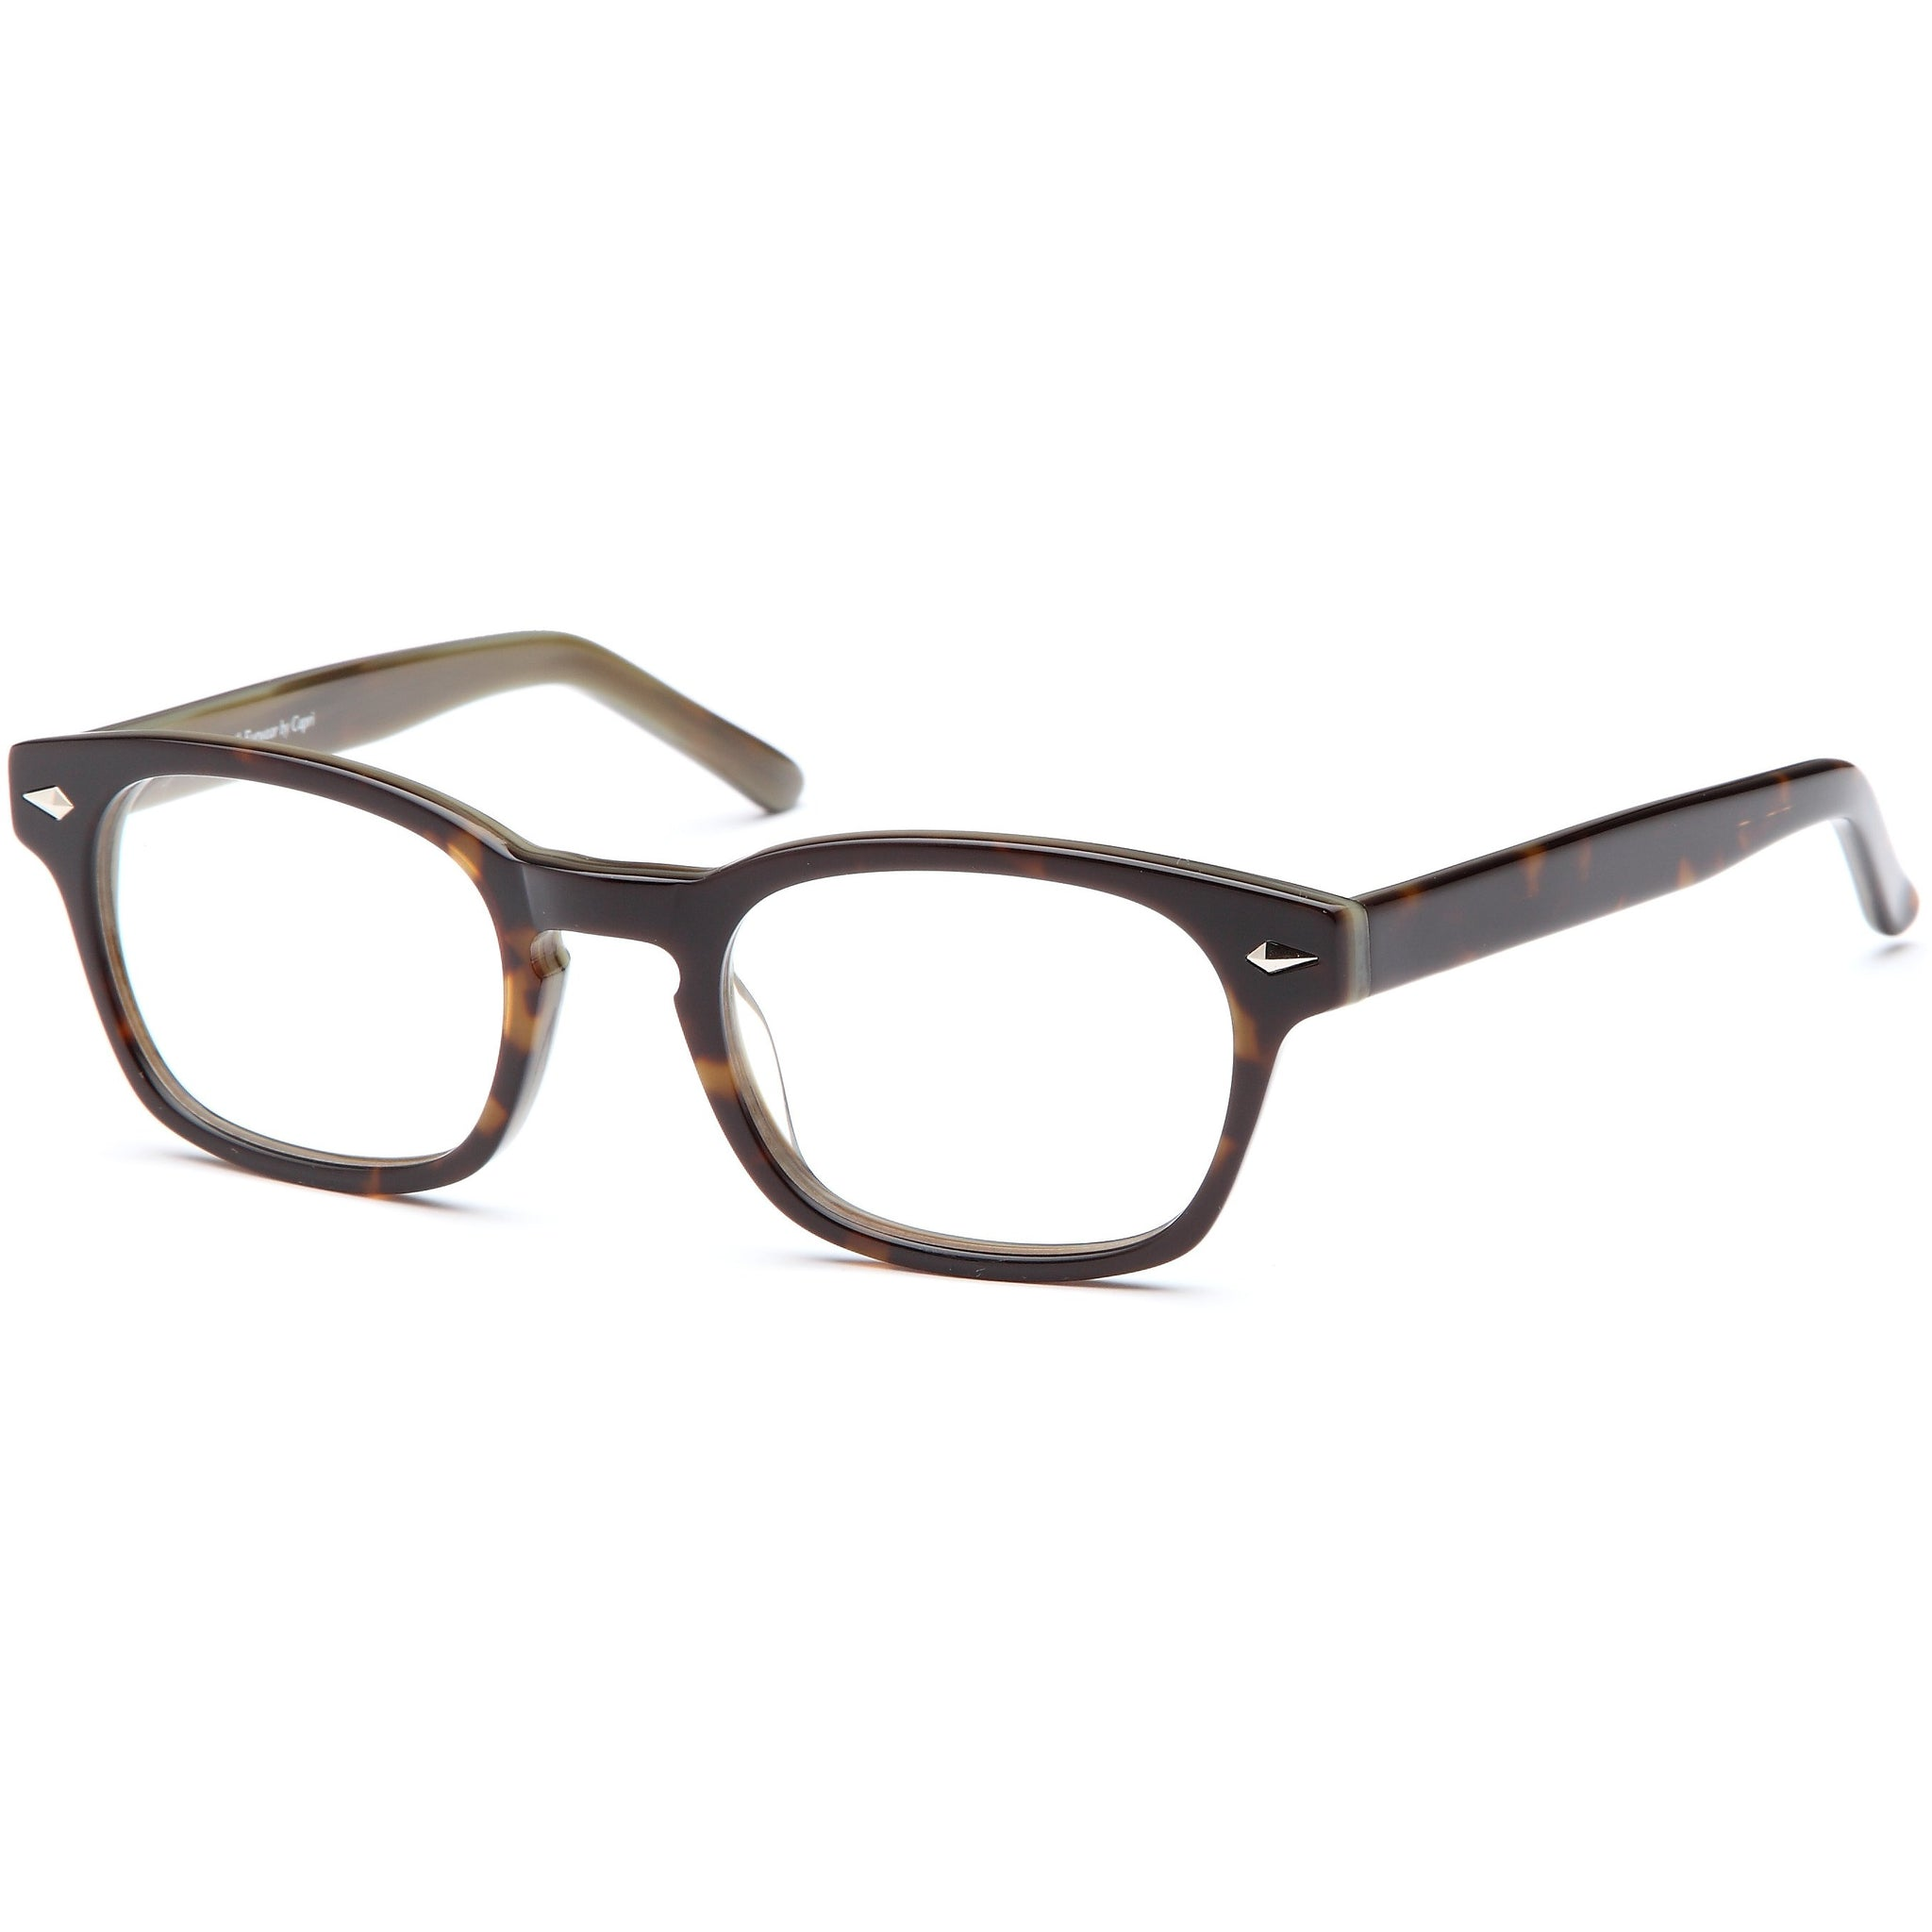 Sophistics Prescription Glasses ART 415 Frame